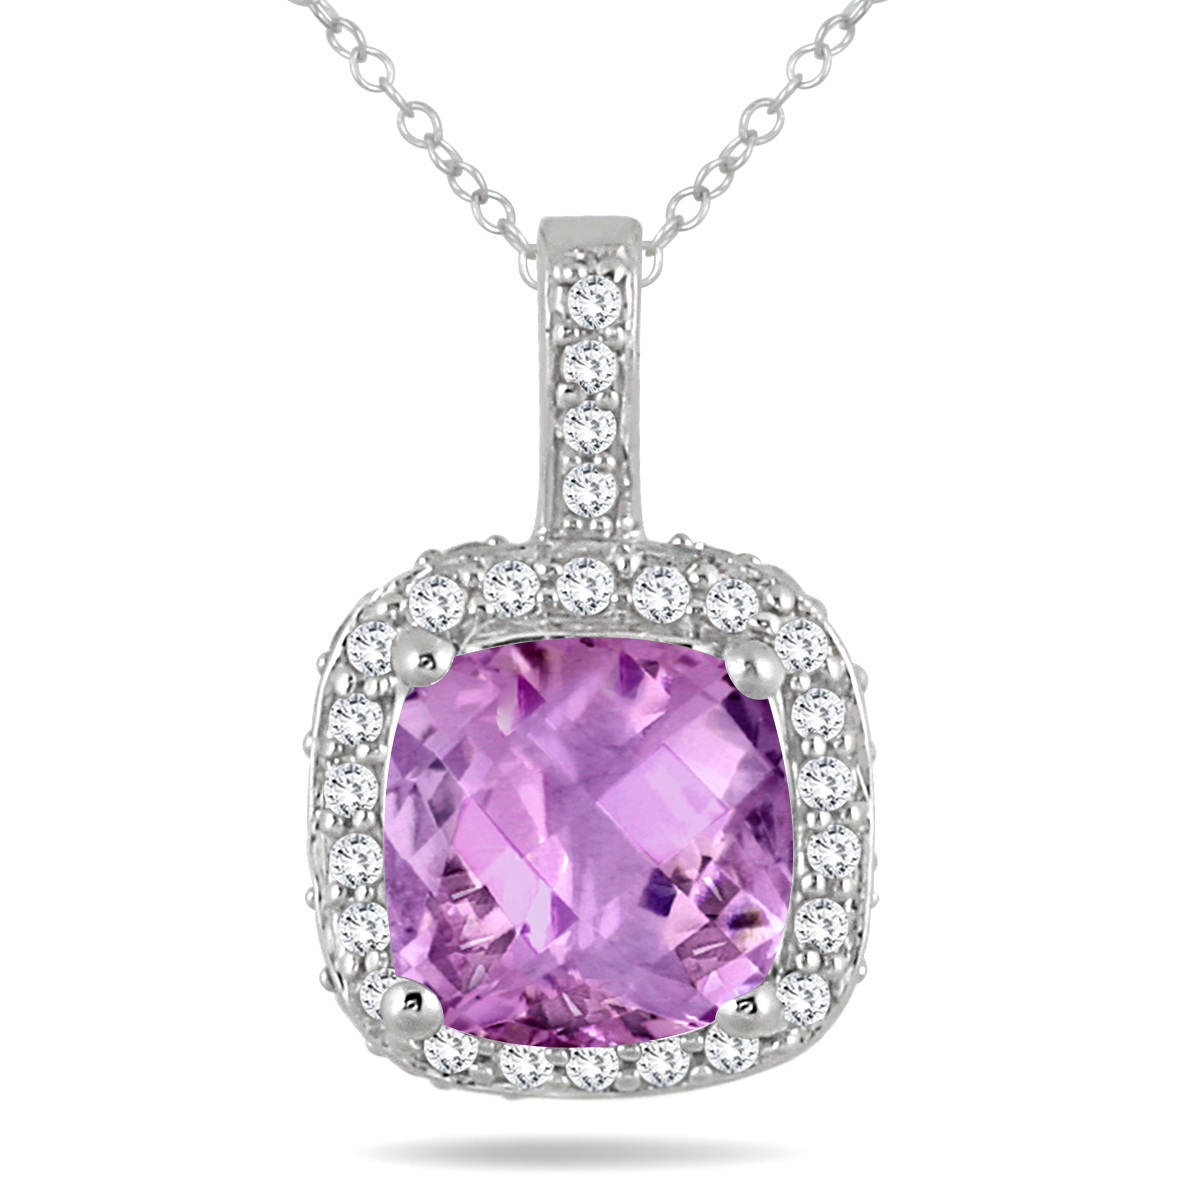 1.50 Carat Cushion Amethyst and Diamond Halo Pendant in 14K White Gold